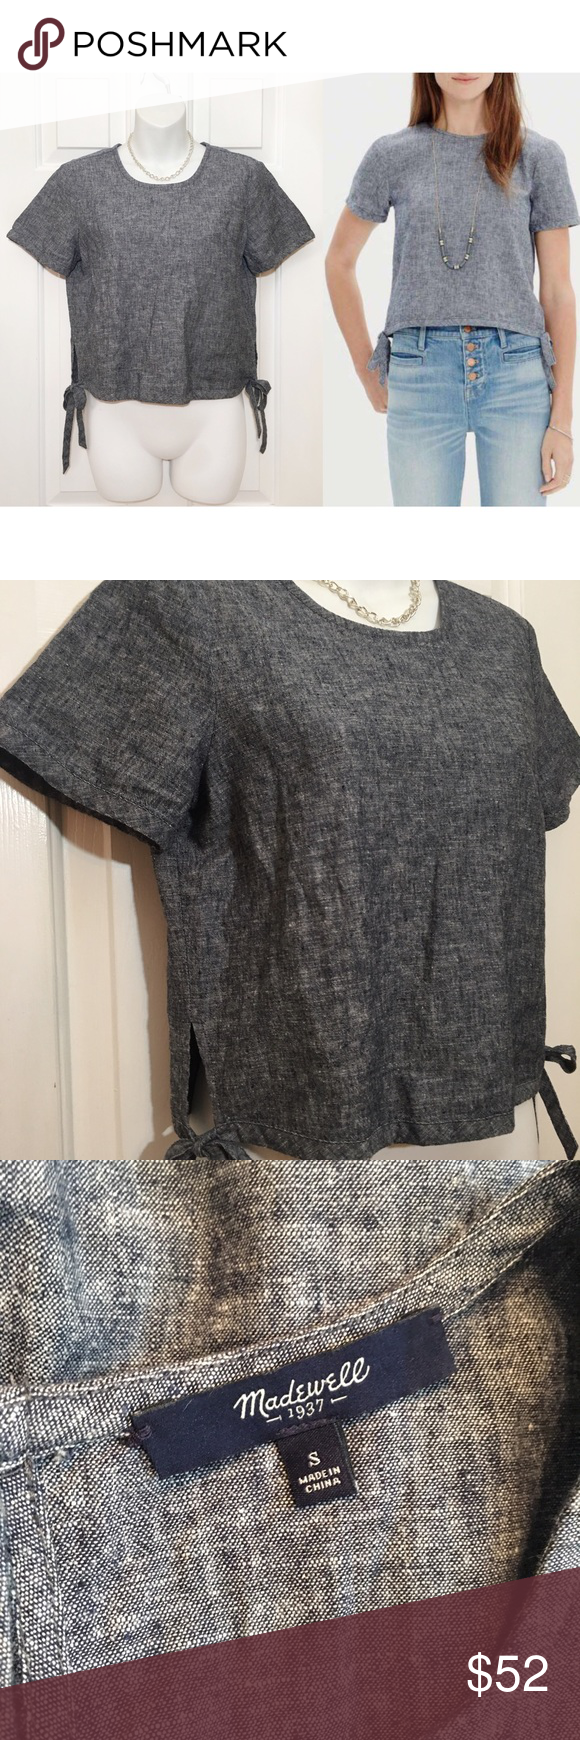 мα∂єωєℓℓ - Denim Semi-Cropped Top Great as a layering piece   ☞ ℓσωєѕт?  Prices are firm unless offer is reasonable  Bundle option is available   ☞ мσ∂єℓ? I do not model my items Comment with specific measurement requests Please allow 2-3 days for request fulfillments   ☞ яєѕєяνє? тяα∂є?  I do not reserve or trade items Madewell Tops